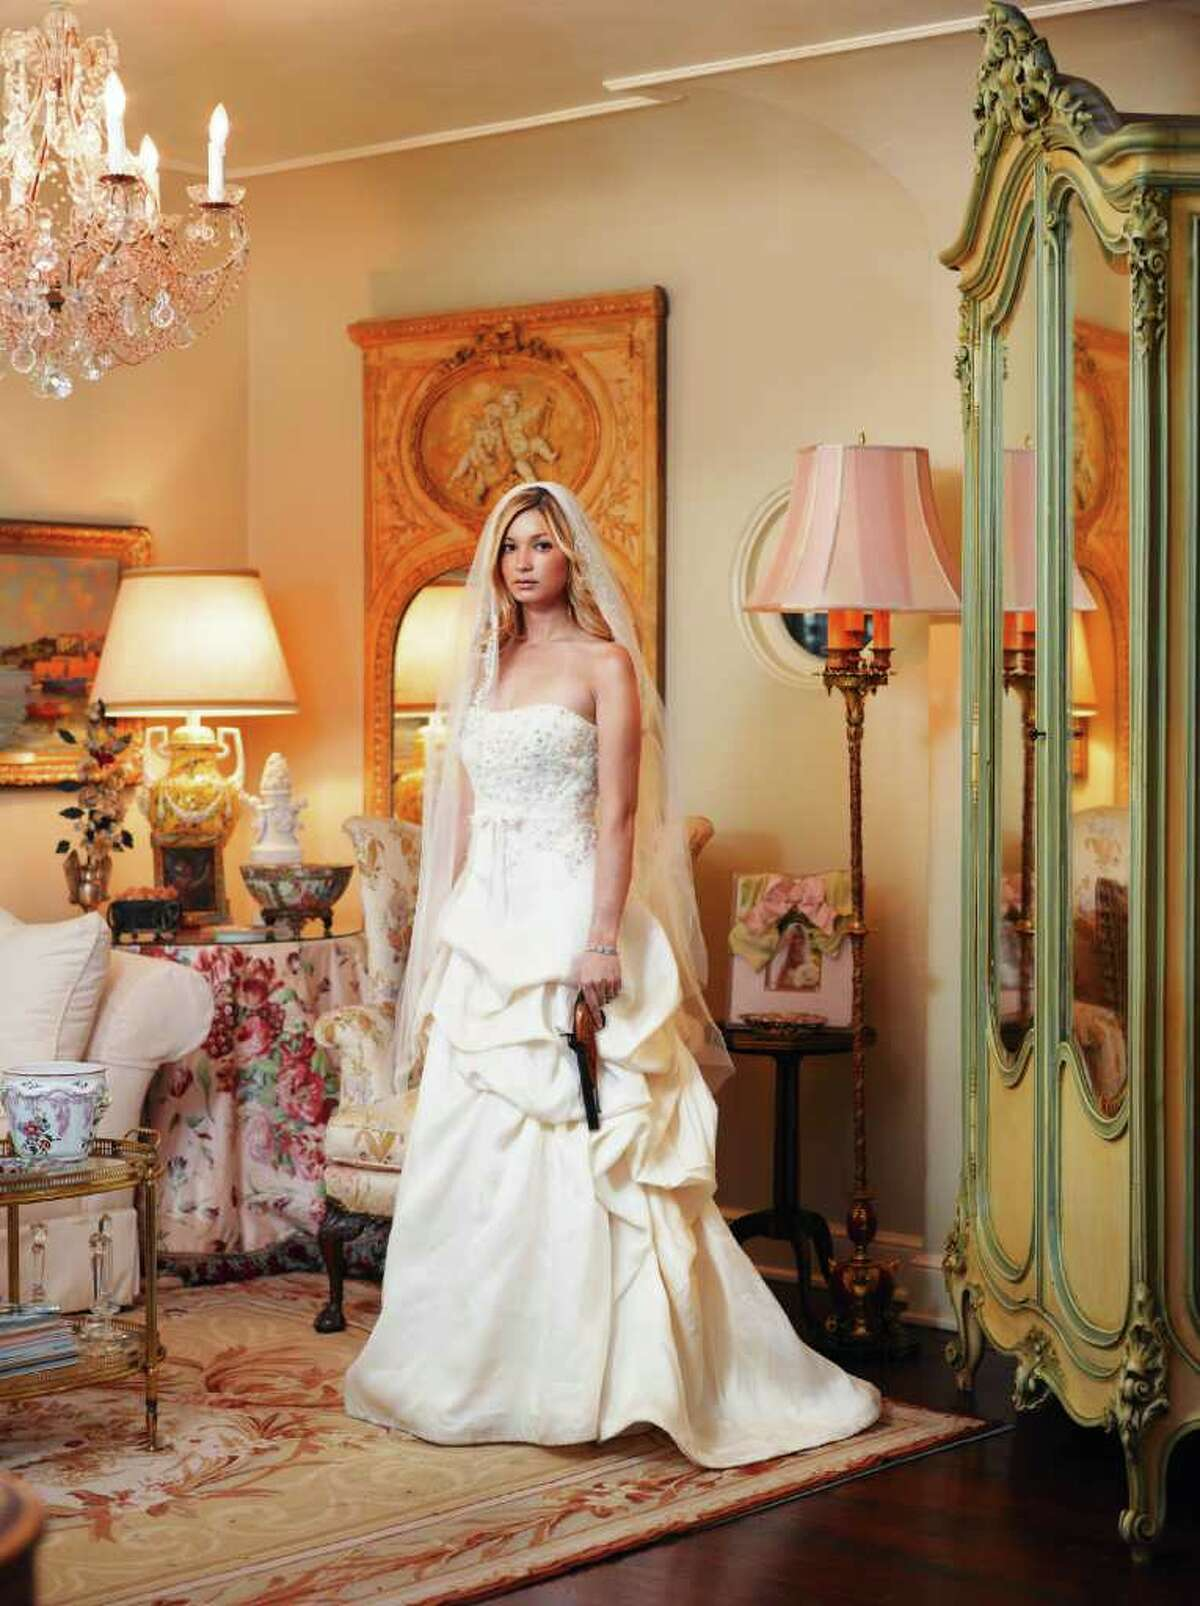 Jenevieve Pitman Zoch of San Antonio is pictured twice in McCrum's book. Here she dons her wedding dress while holding an antique pistol that's been in her family for generations.